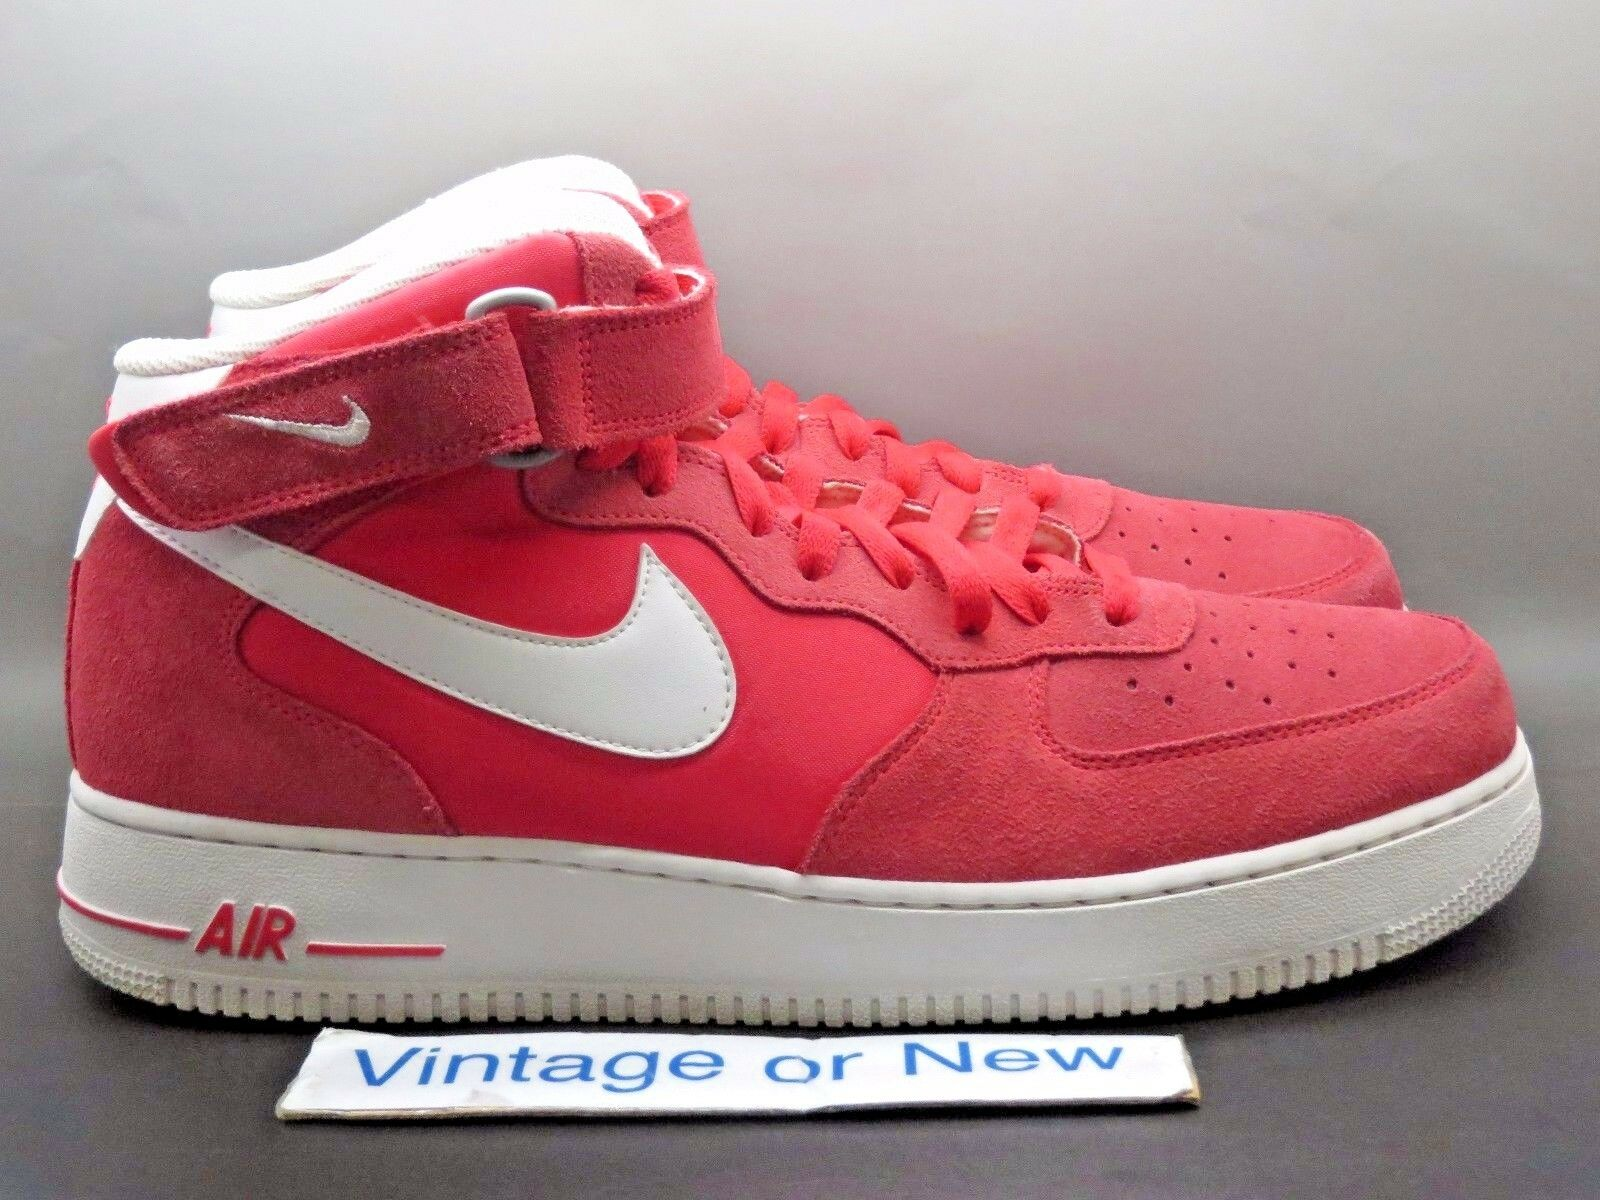 Nike Air Force 1 Mid '07 Fusion Red White 2013 sz 13